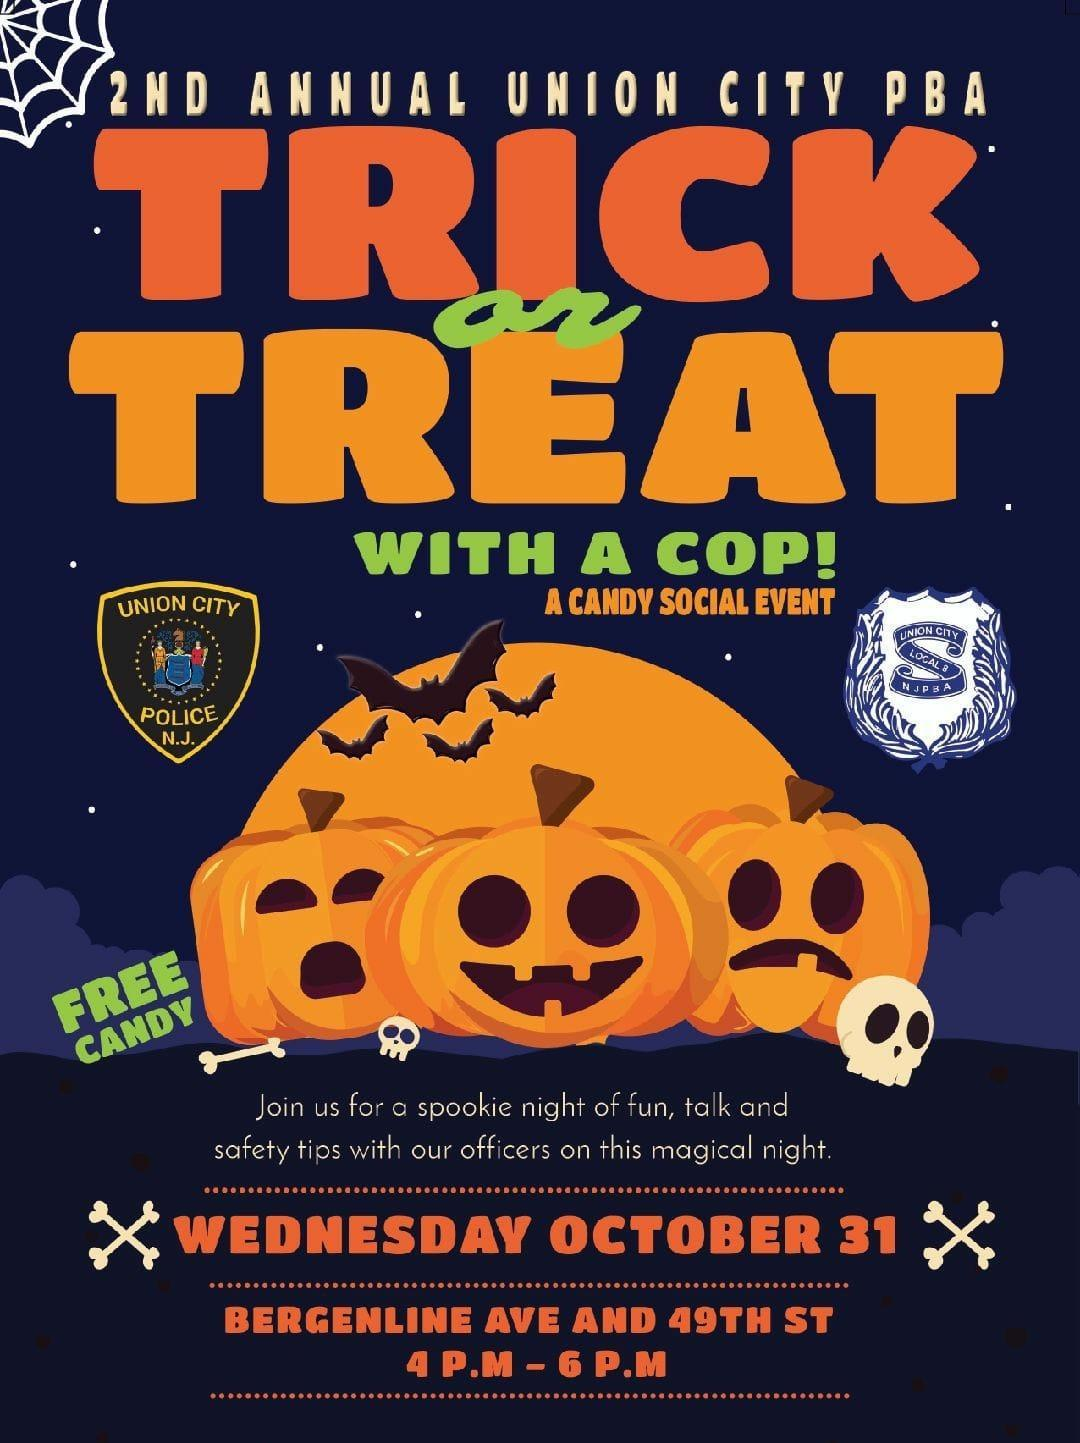 Trick or Treat with a Cop flyer for Halloween